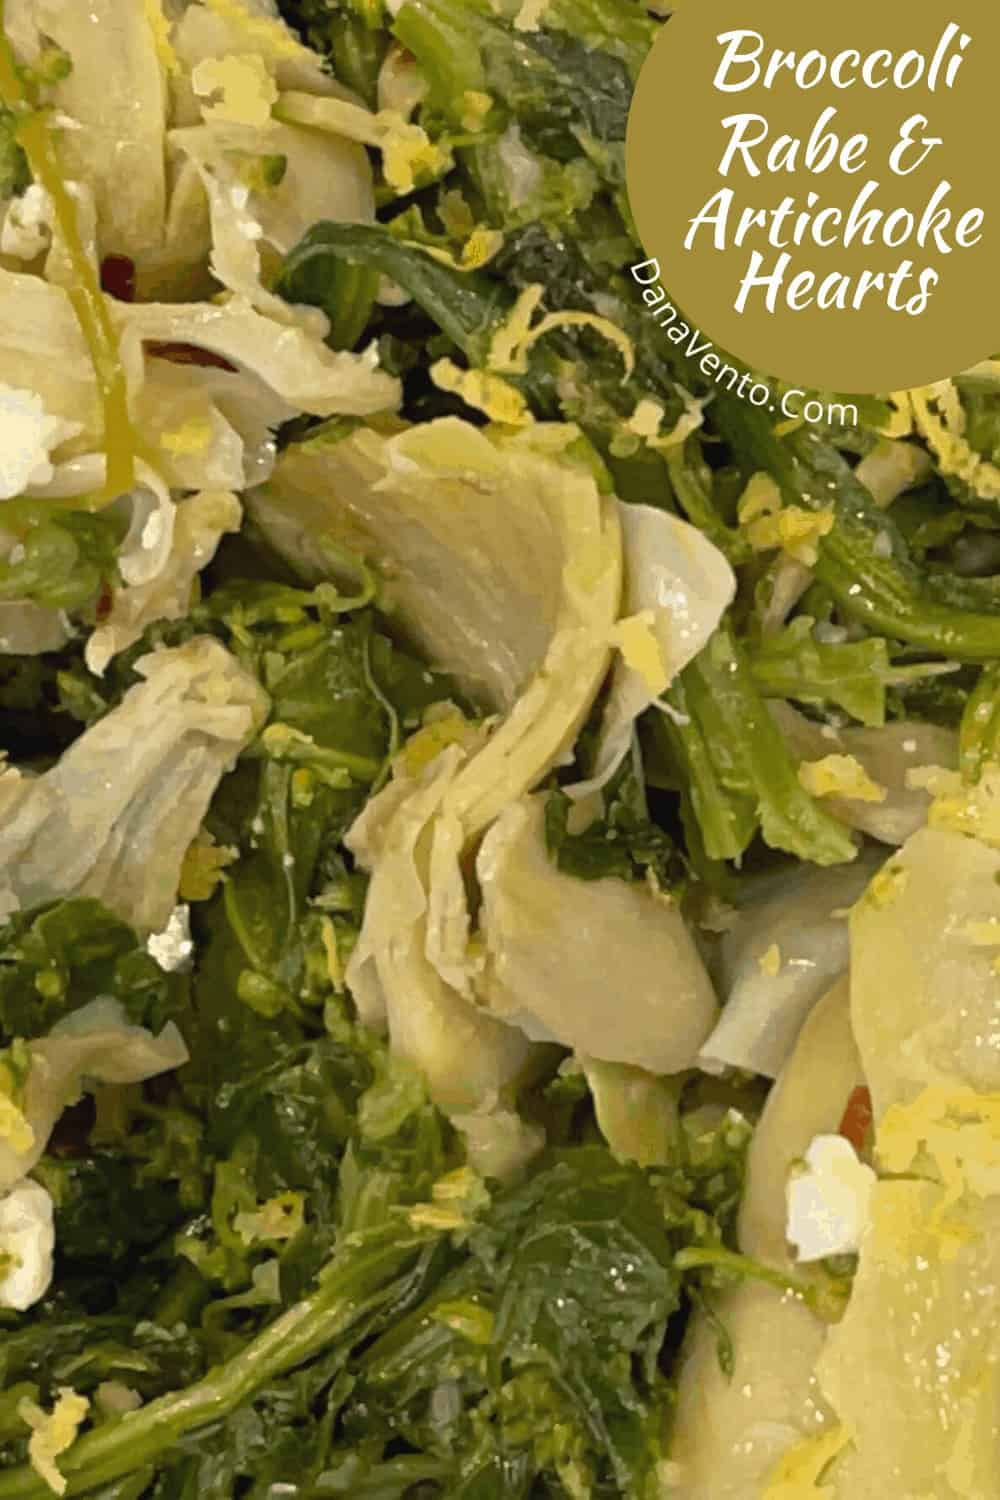 Broccoli Rabe and Artichokes hearts on plate